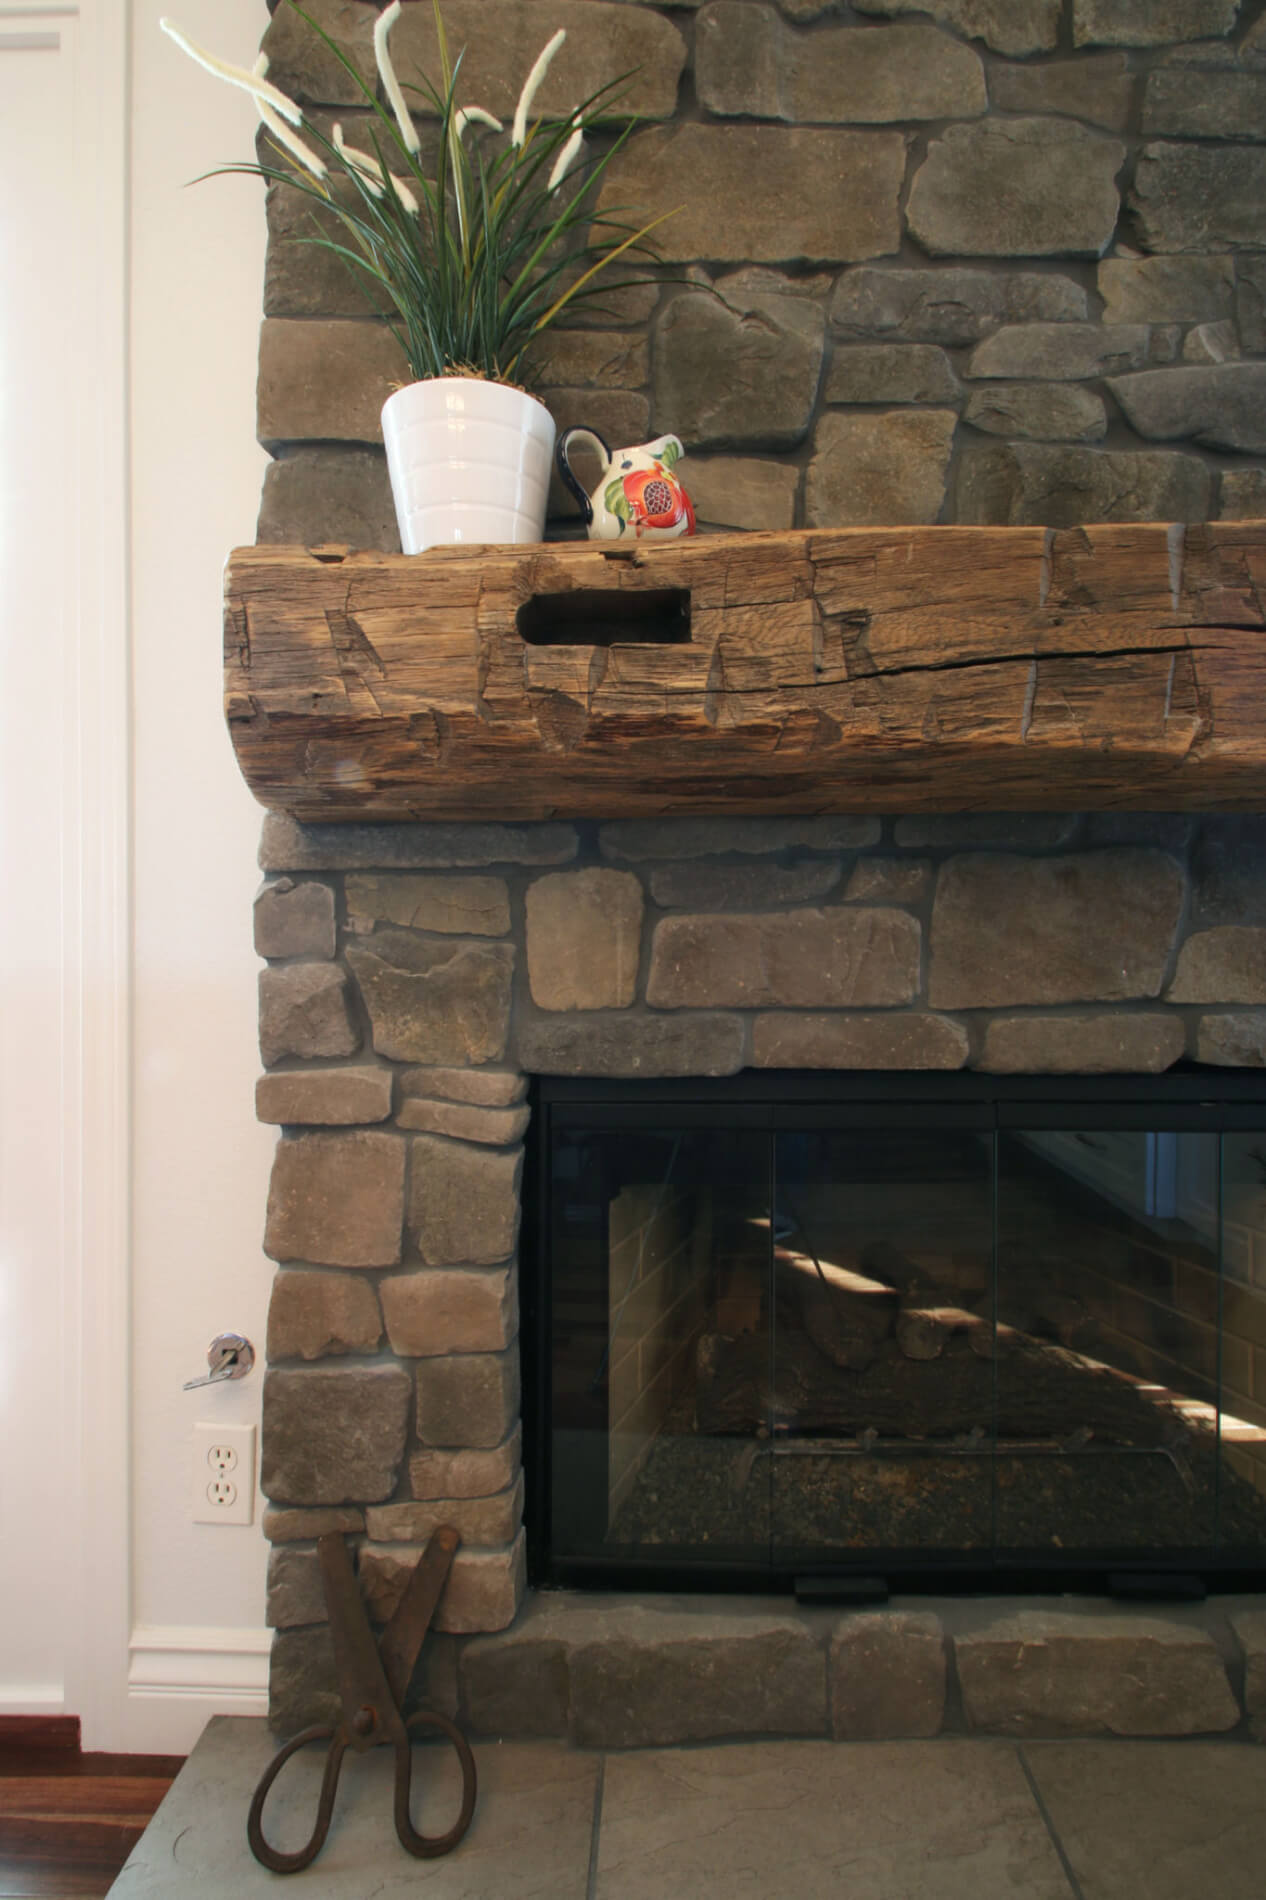 Reclaimed Wood Fireplace Mantle Remodel Orange County, Stack Stone Fireplace in Orange County Remodel